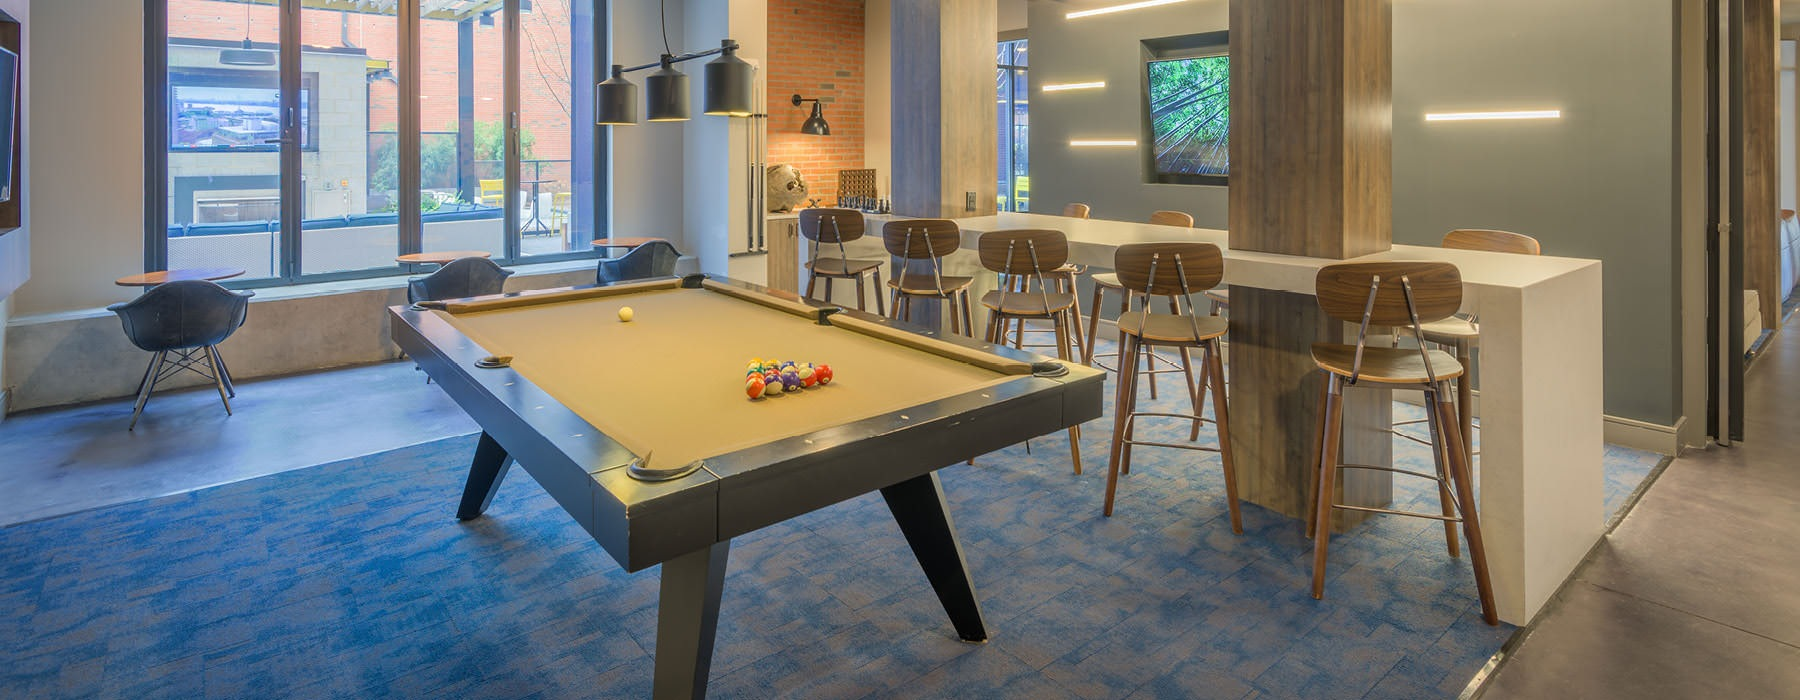 billiards table in brightly lit clubhouse